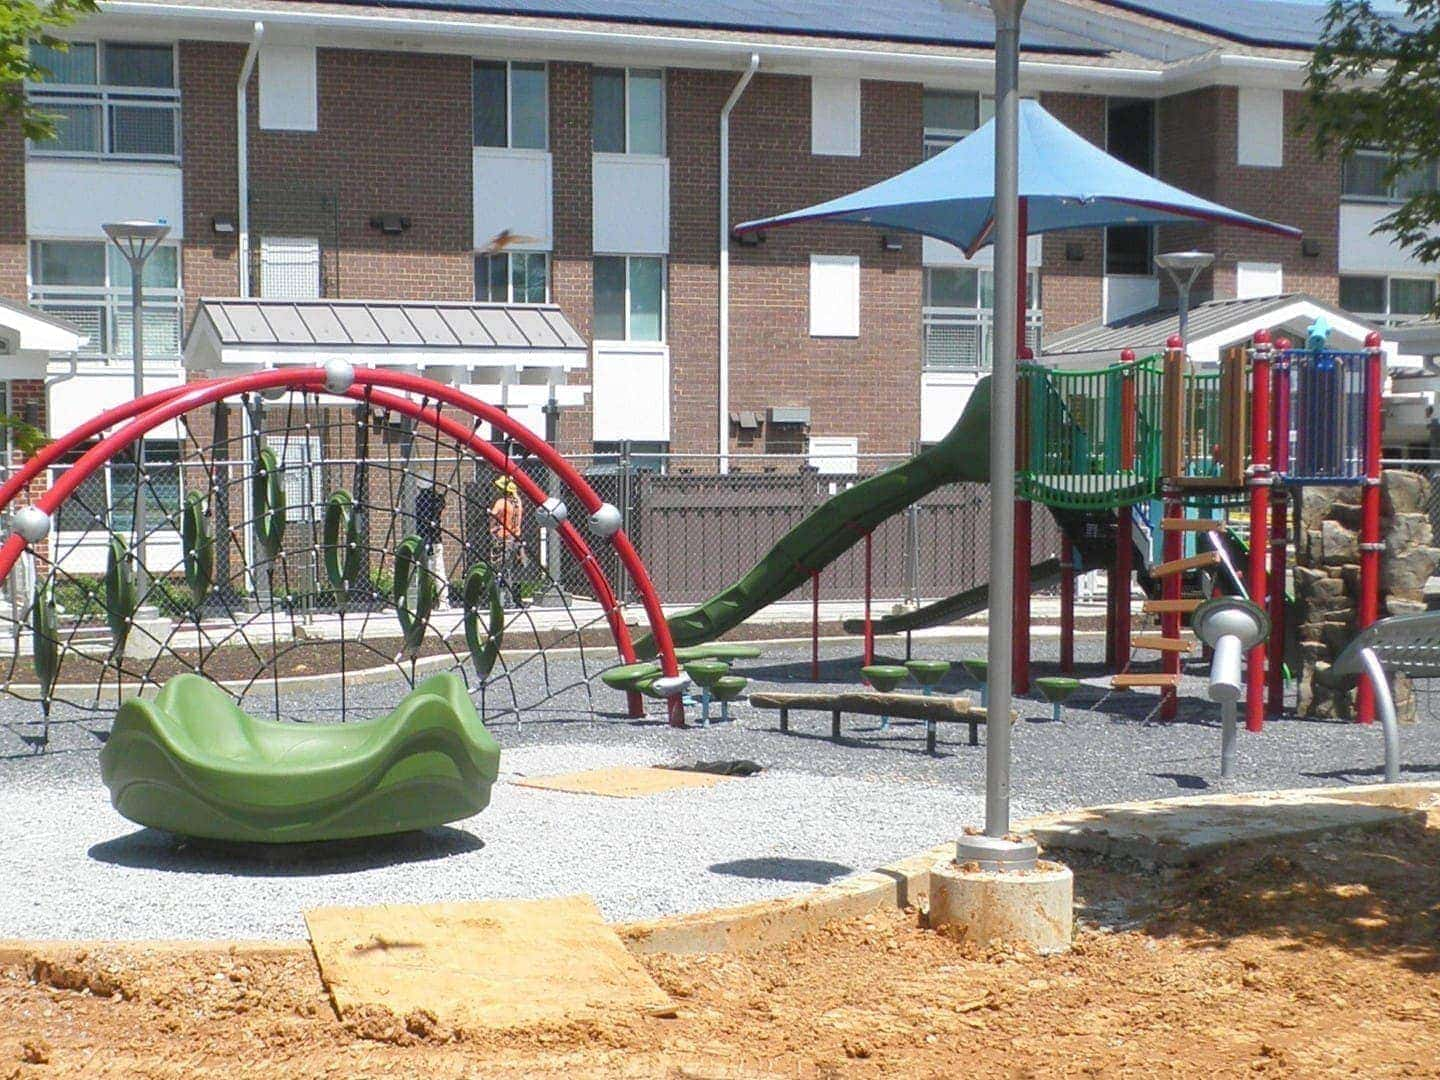 A playground in front of a Trex Seclusions Fence at the Parkway Overlook Apartments complex in Washington DC